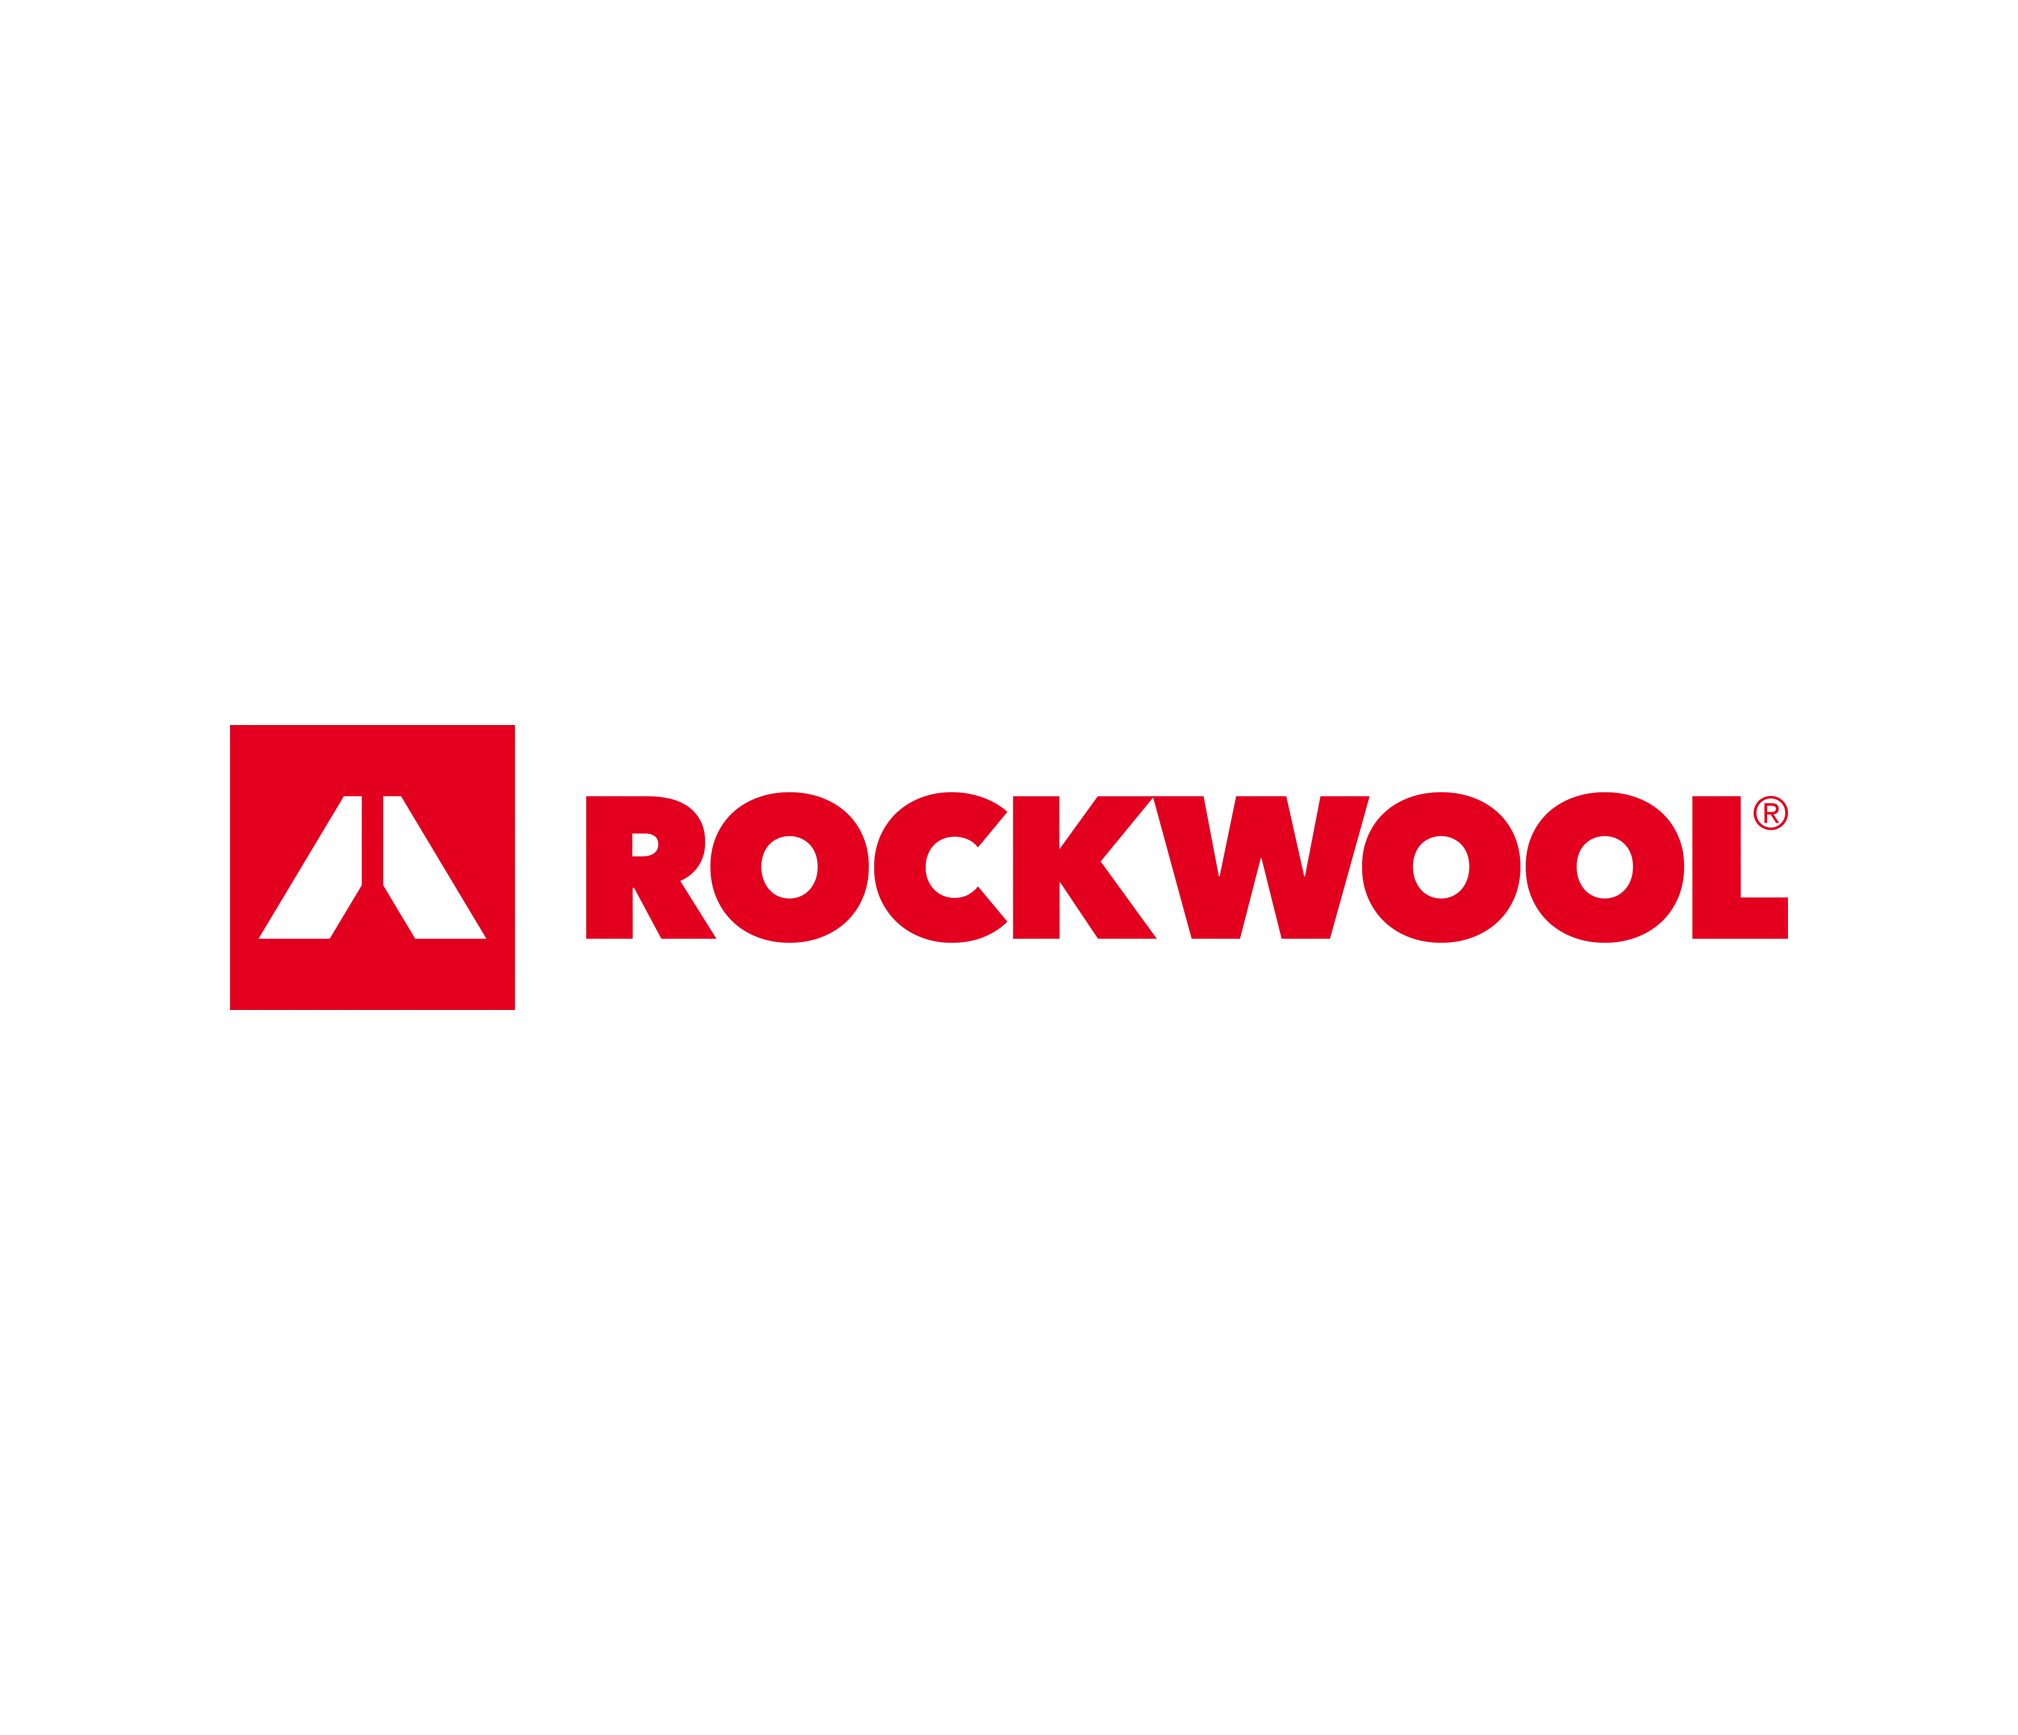 Rockwool Insultation Supplies Logo